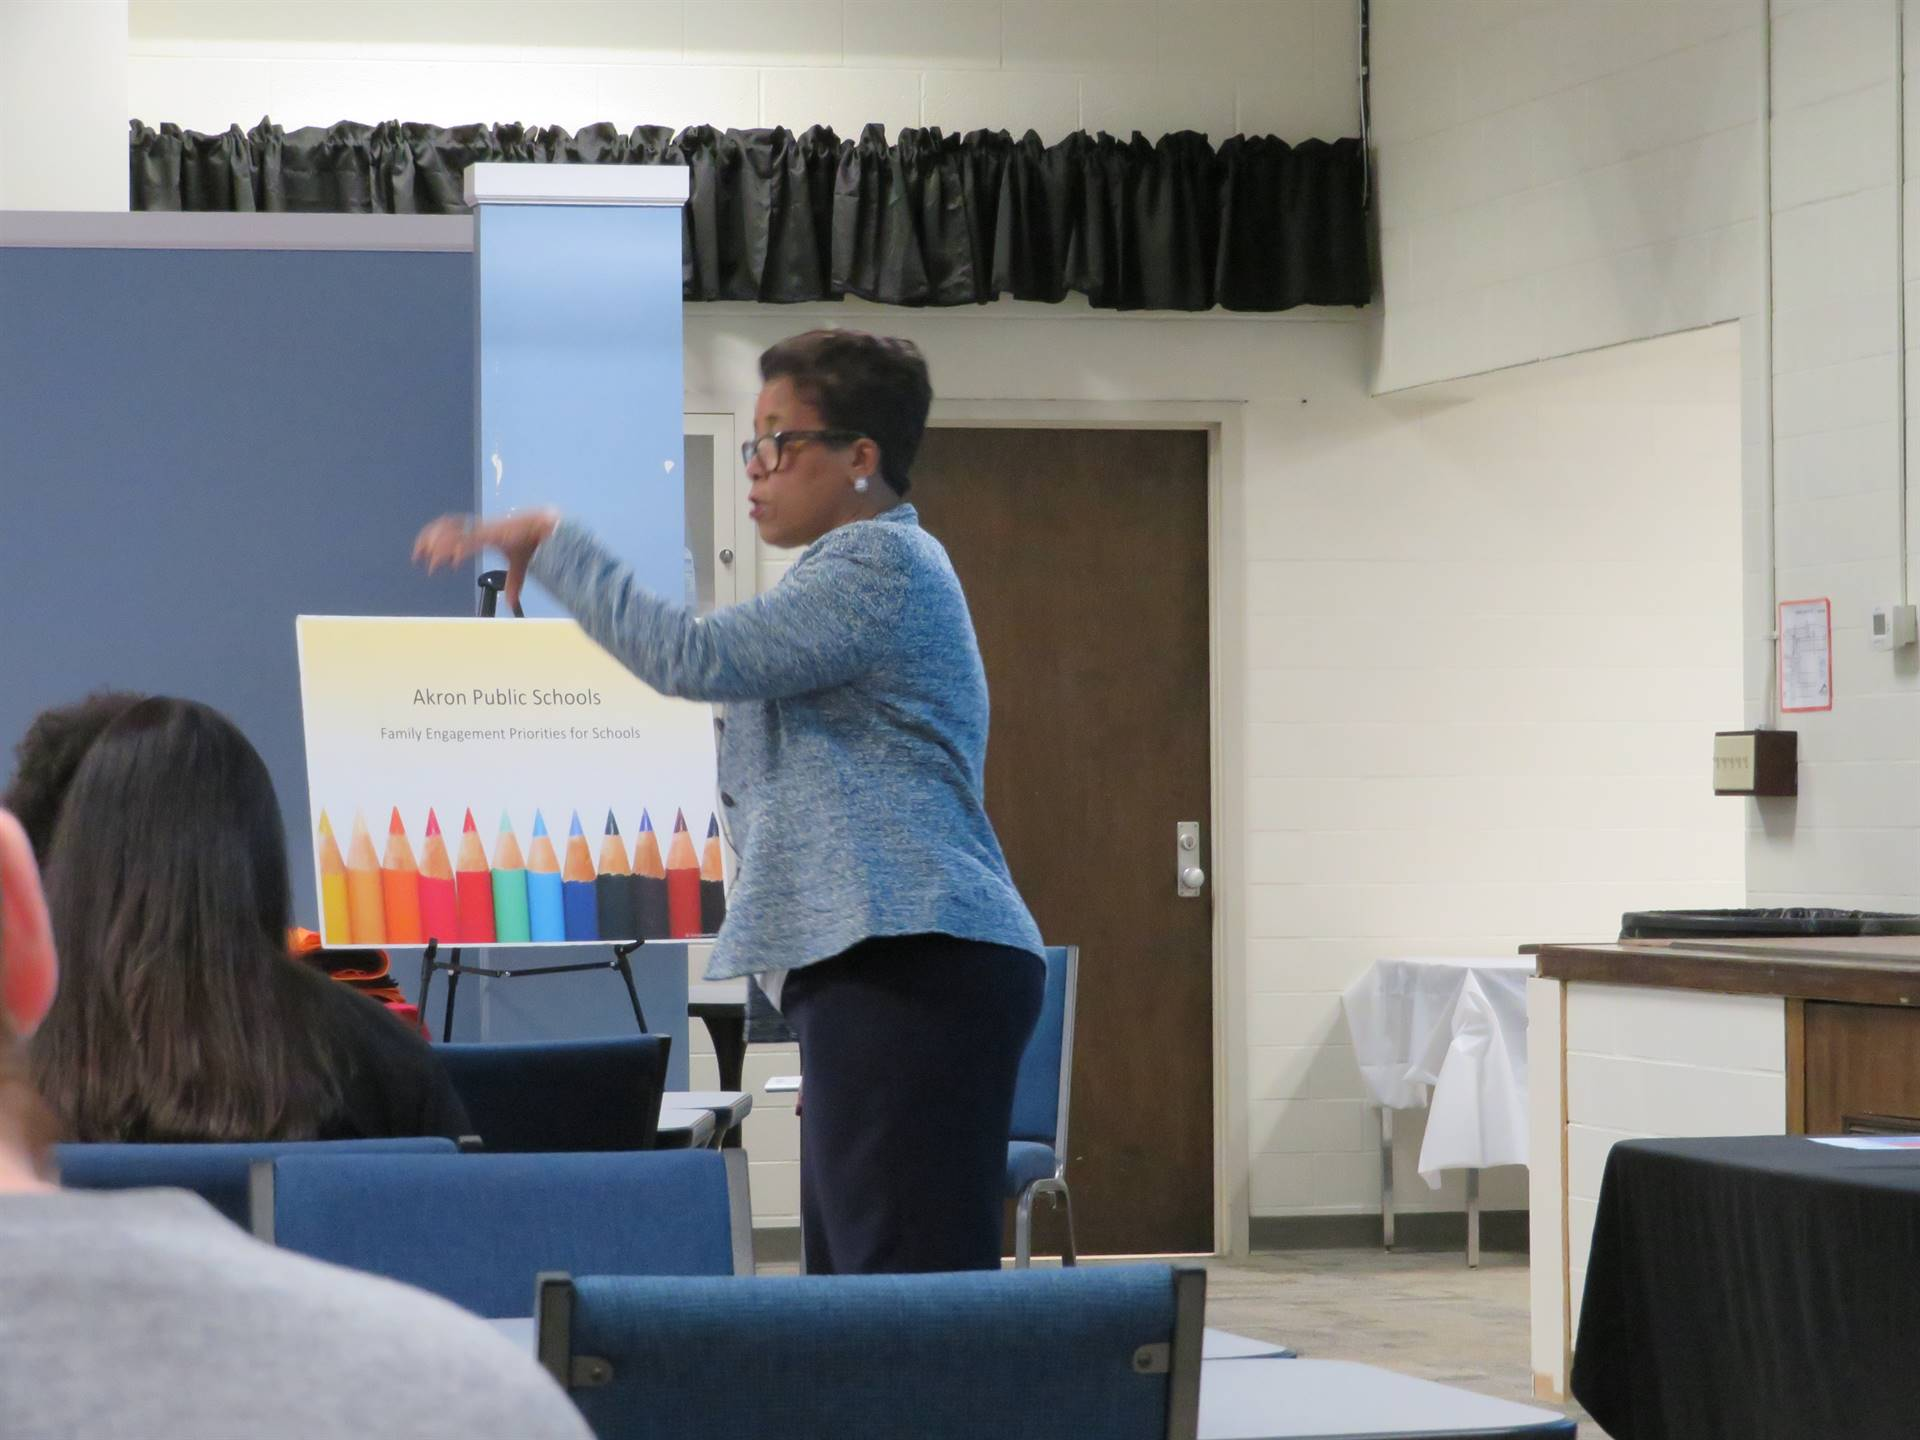 Karen Mapp pointing